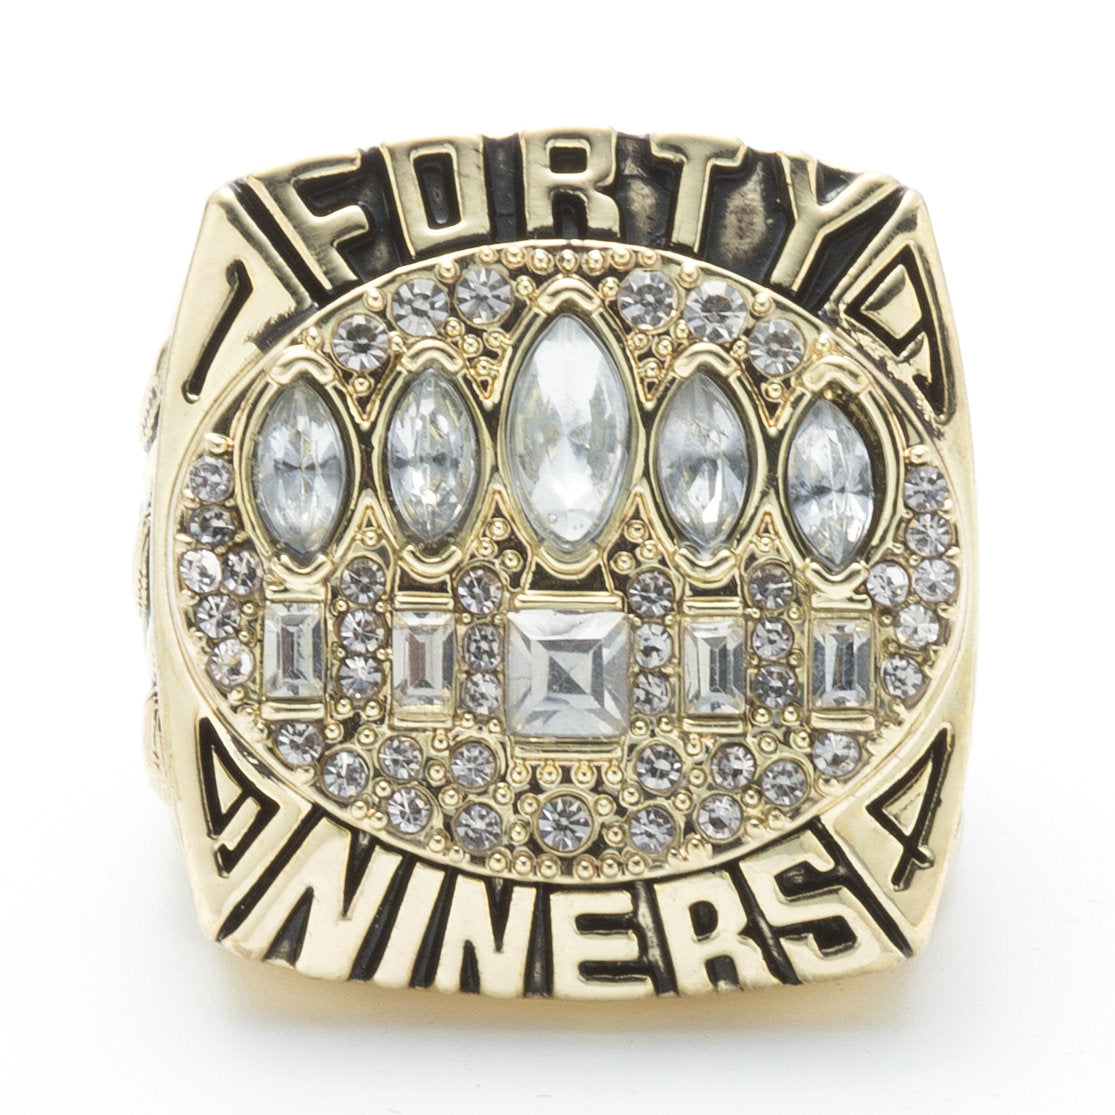 Top NFL 1994 SAN FRANCISCO 49ERS SUPER BOWL XXIX WORLD CHAMPIONSHIP RING  for sale